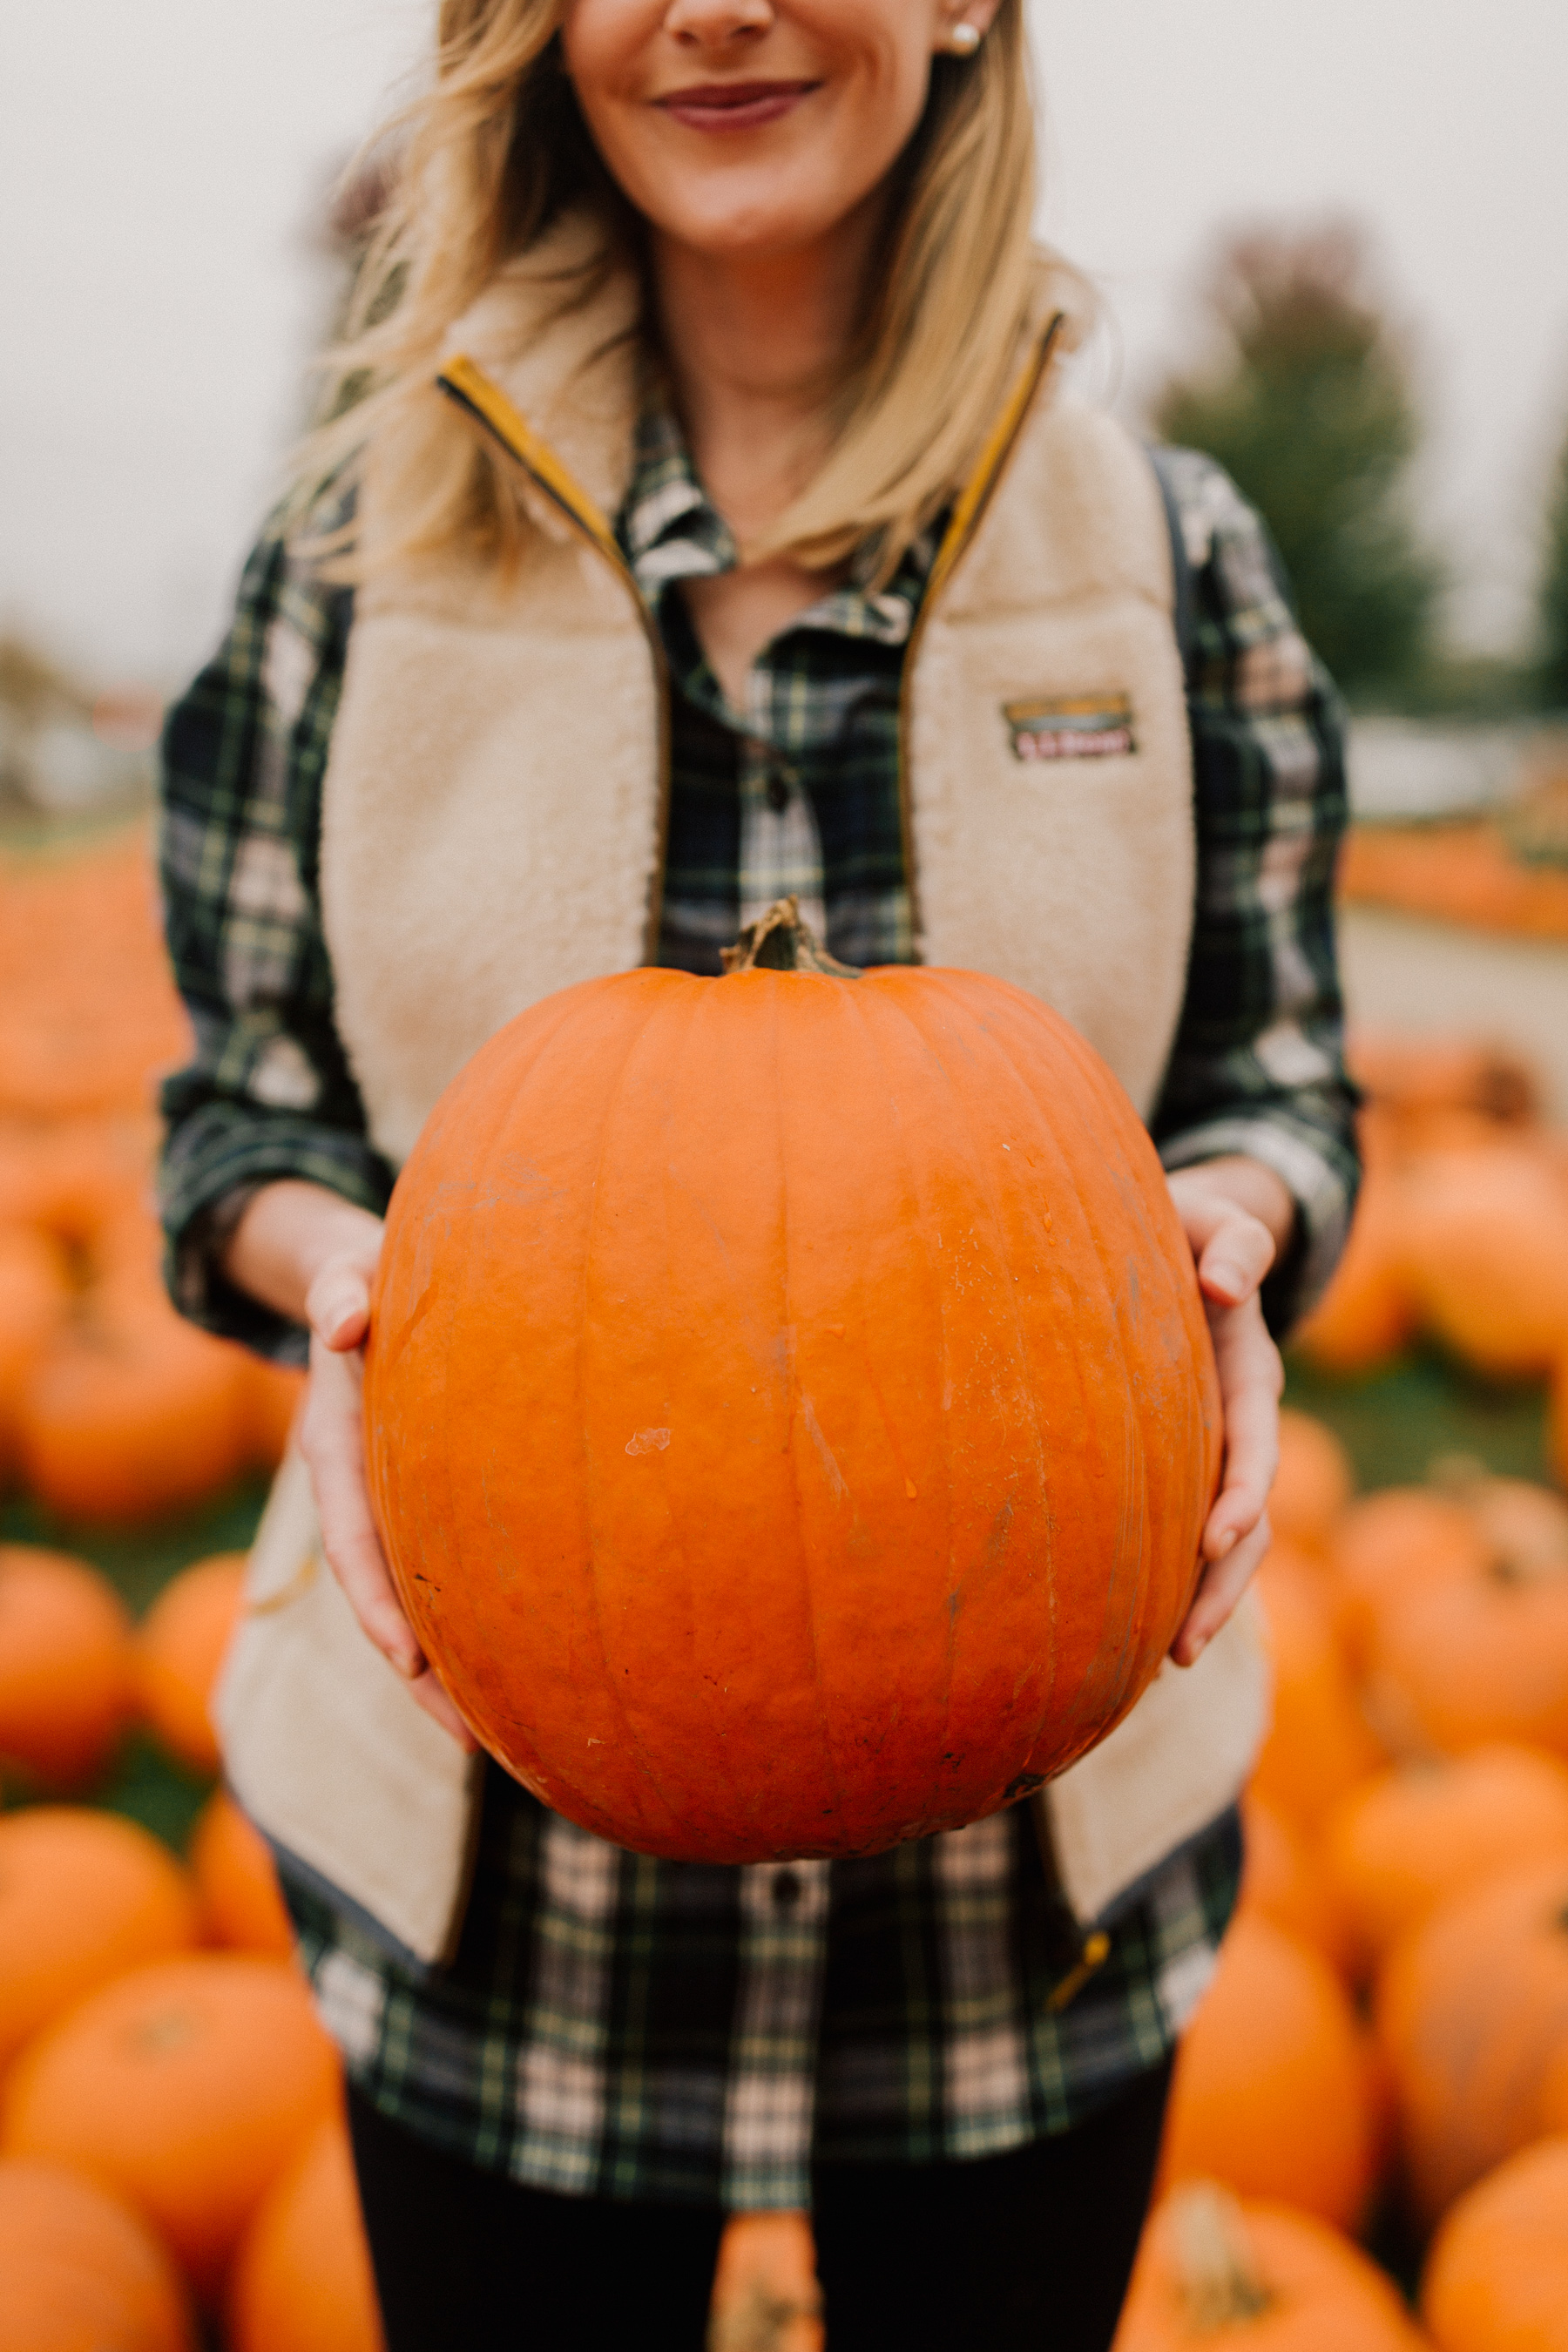 My Most-Worn Fall Outfit and Pumpkin Picking with the Larkins